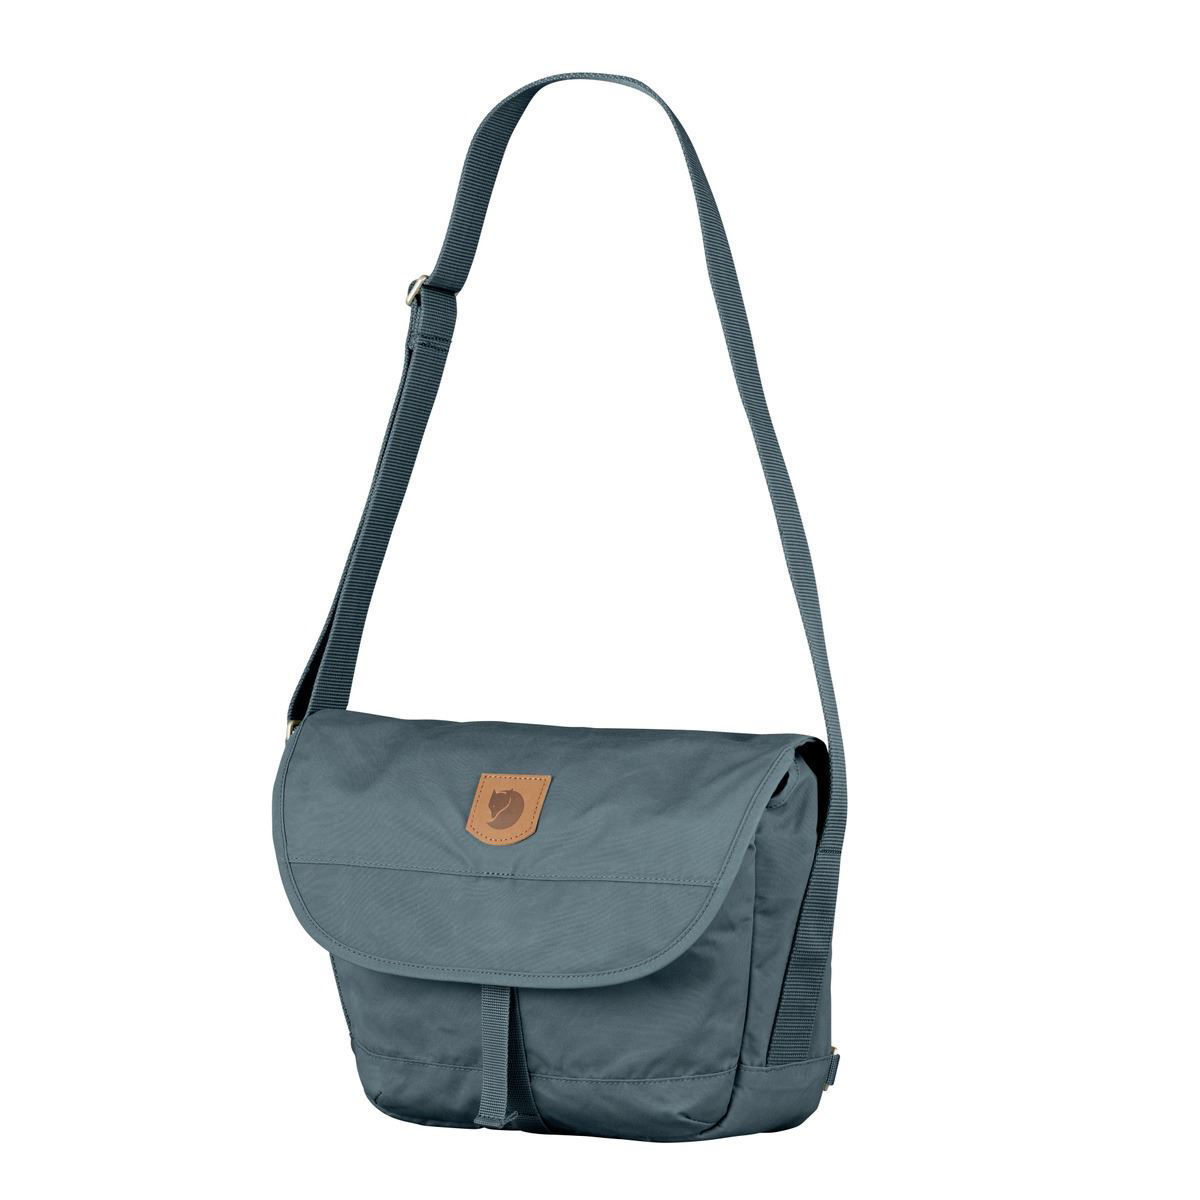 Bilde av Greenland Shoulder Bag Small